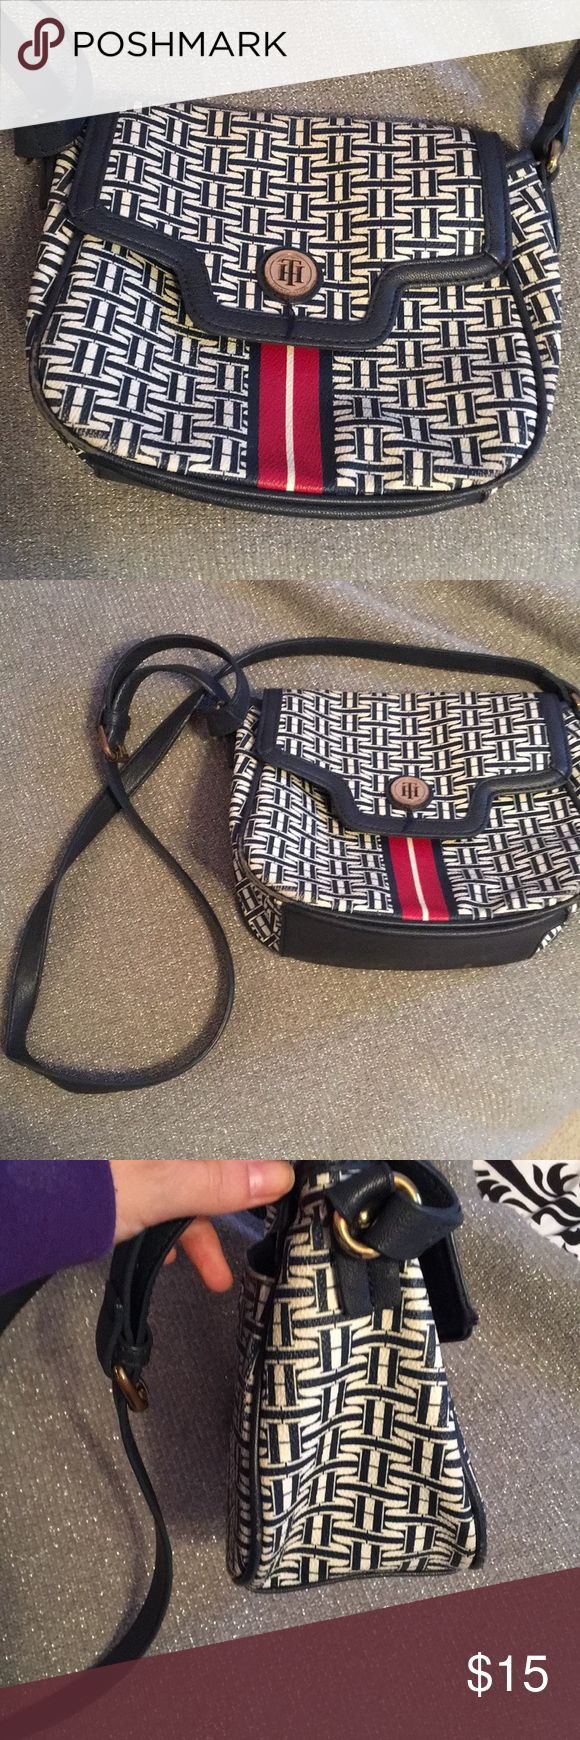 Blue and white cross body purse/ inside pockets Tommy Hilfiger cross body purse that has lots of room! Great for traveling and trips! Small amounts of fading on the back but not noticeable when wearing it Tommy Hilfiger Bags Shoulder Bags